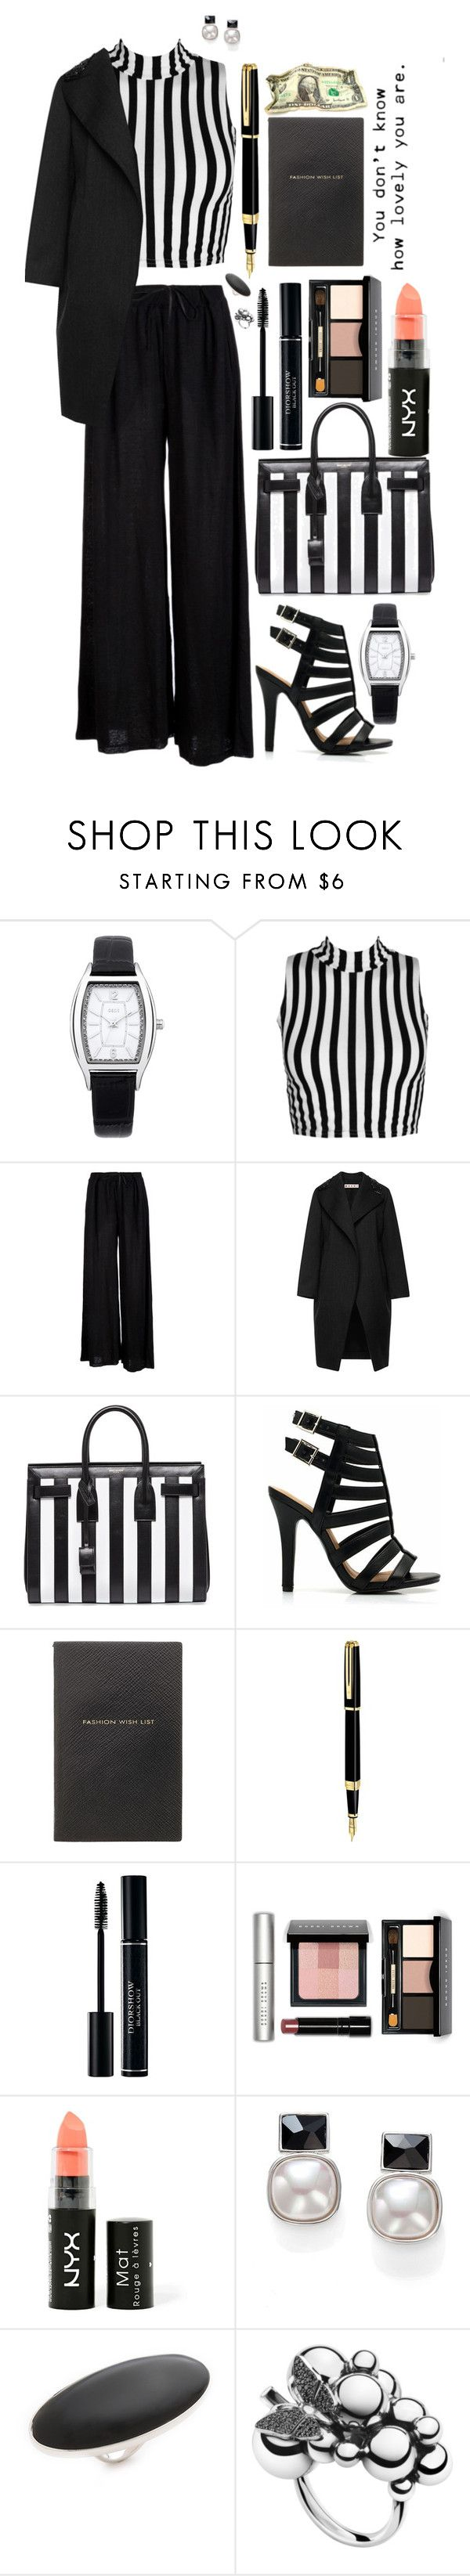 """""""Cage Heels"""" by missvip92 ❤ liked on Polyvore featuring Oasis, B*+S, Marni, Yves Saint Laurent, Smythson, Waterman, Bobbi Brown Cosmetics, NYX, Majorica and Maison Margiela"""